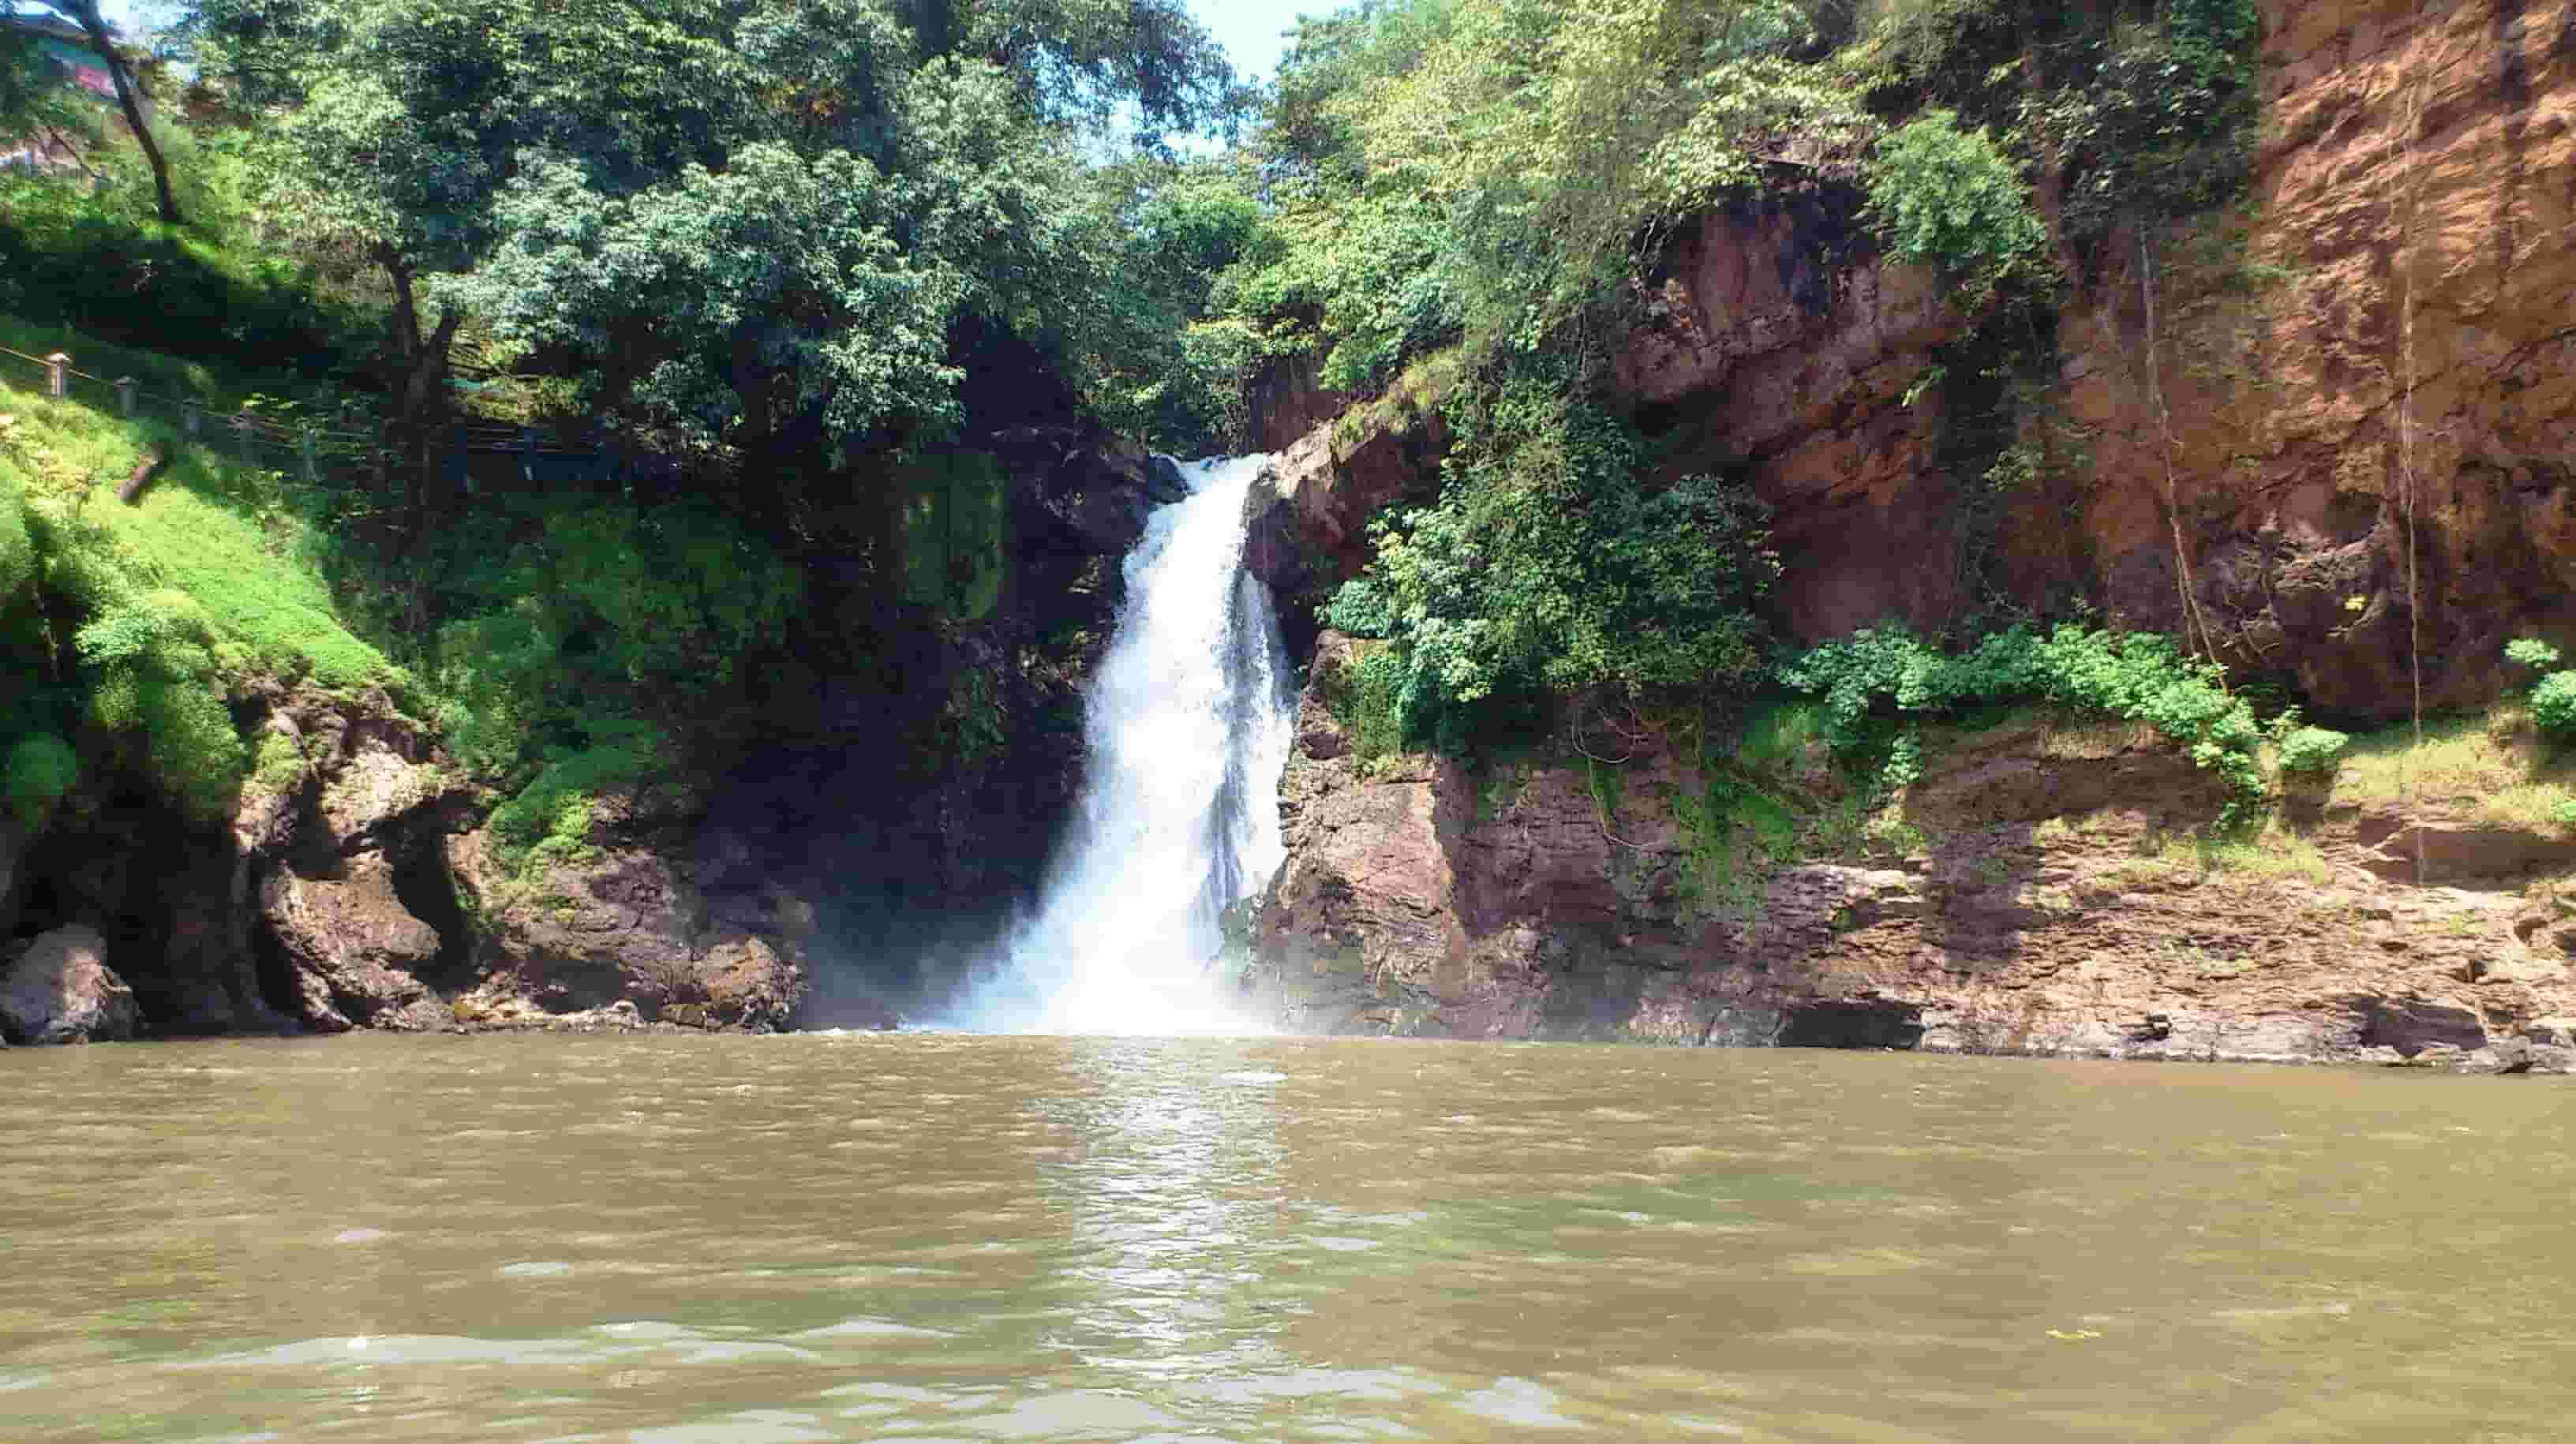 Pandava Caves and Arvalem Waterfall